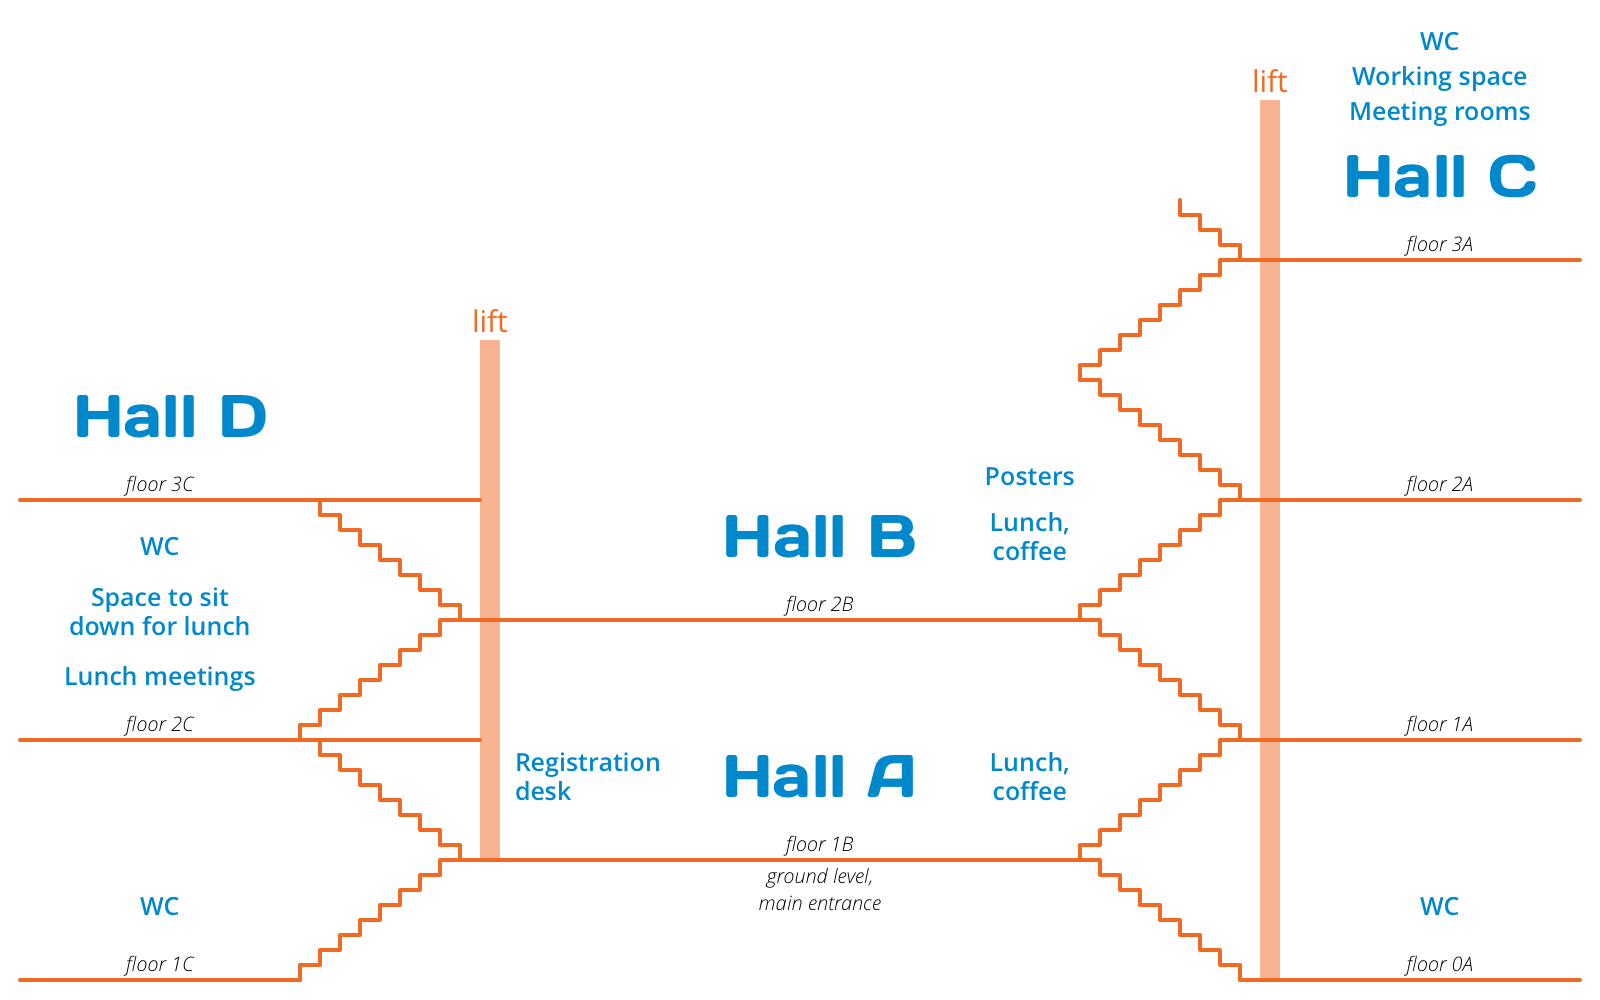 Layout of the ALGO 2018 venue